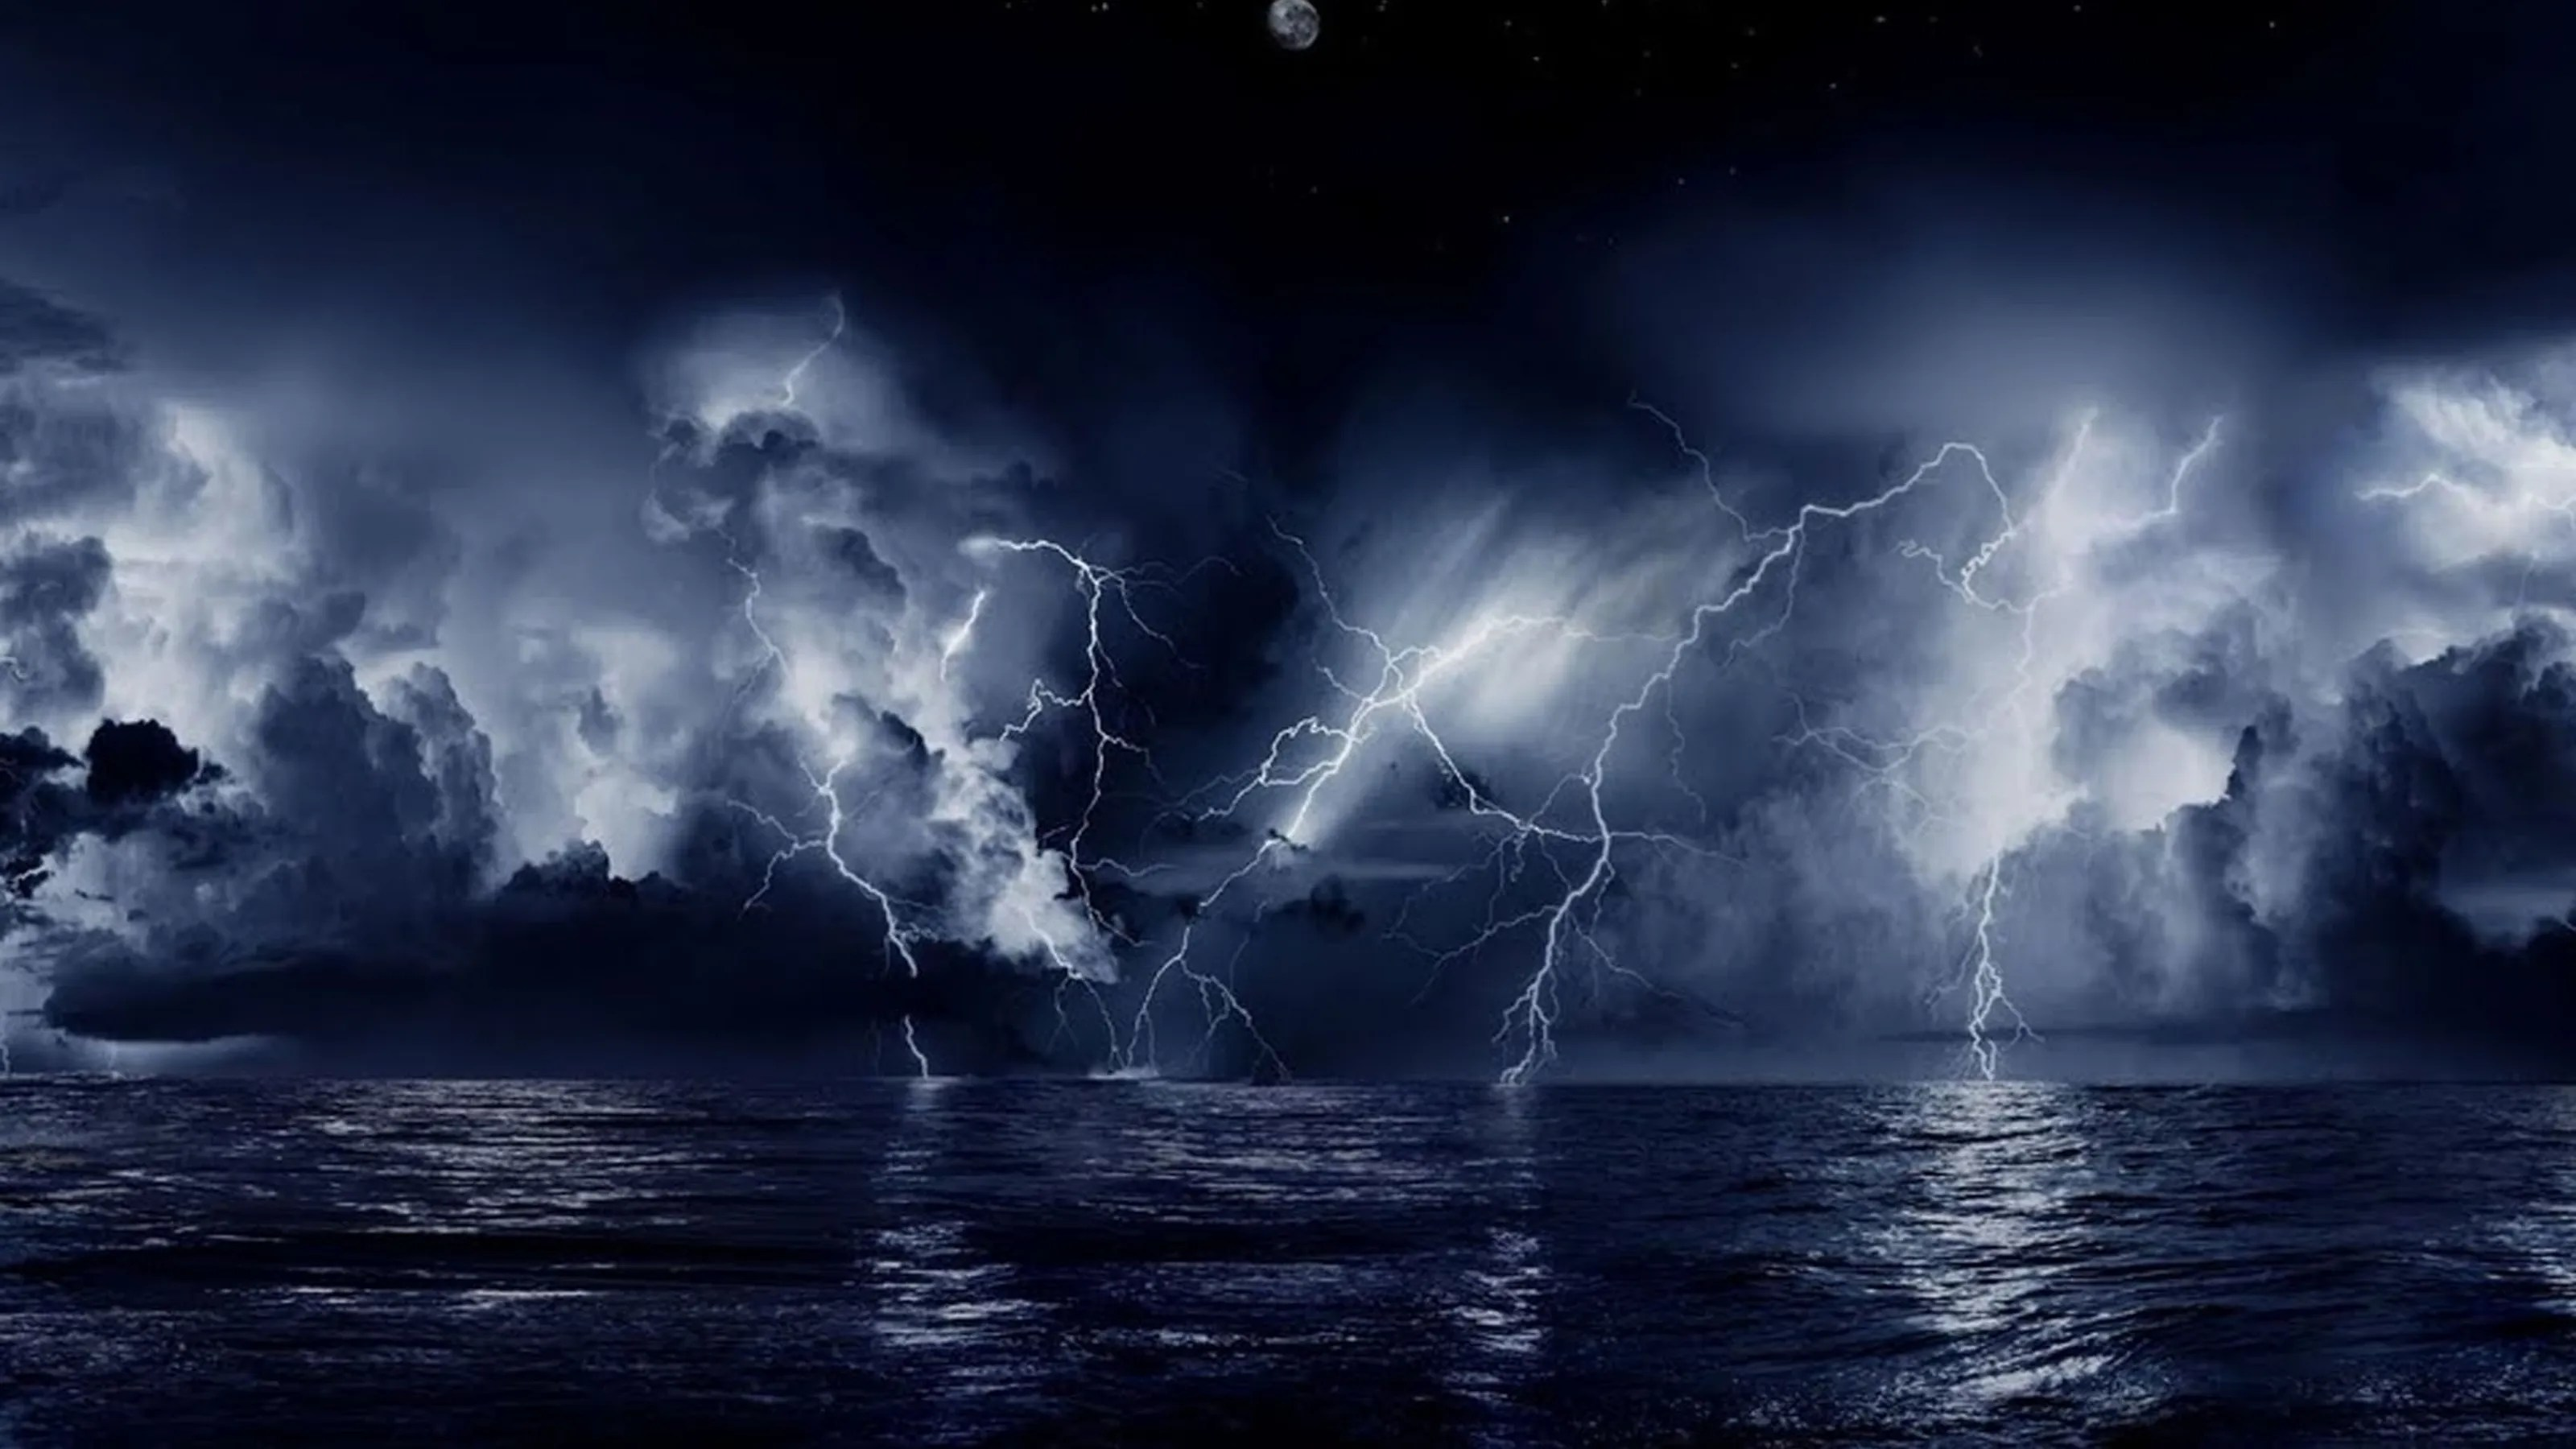 Jesus Live Wallpaper 3d Places To See Incredible Natural Phenomena